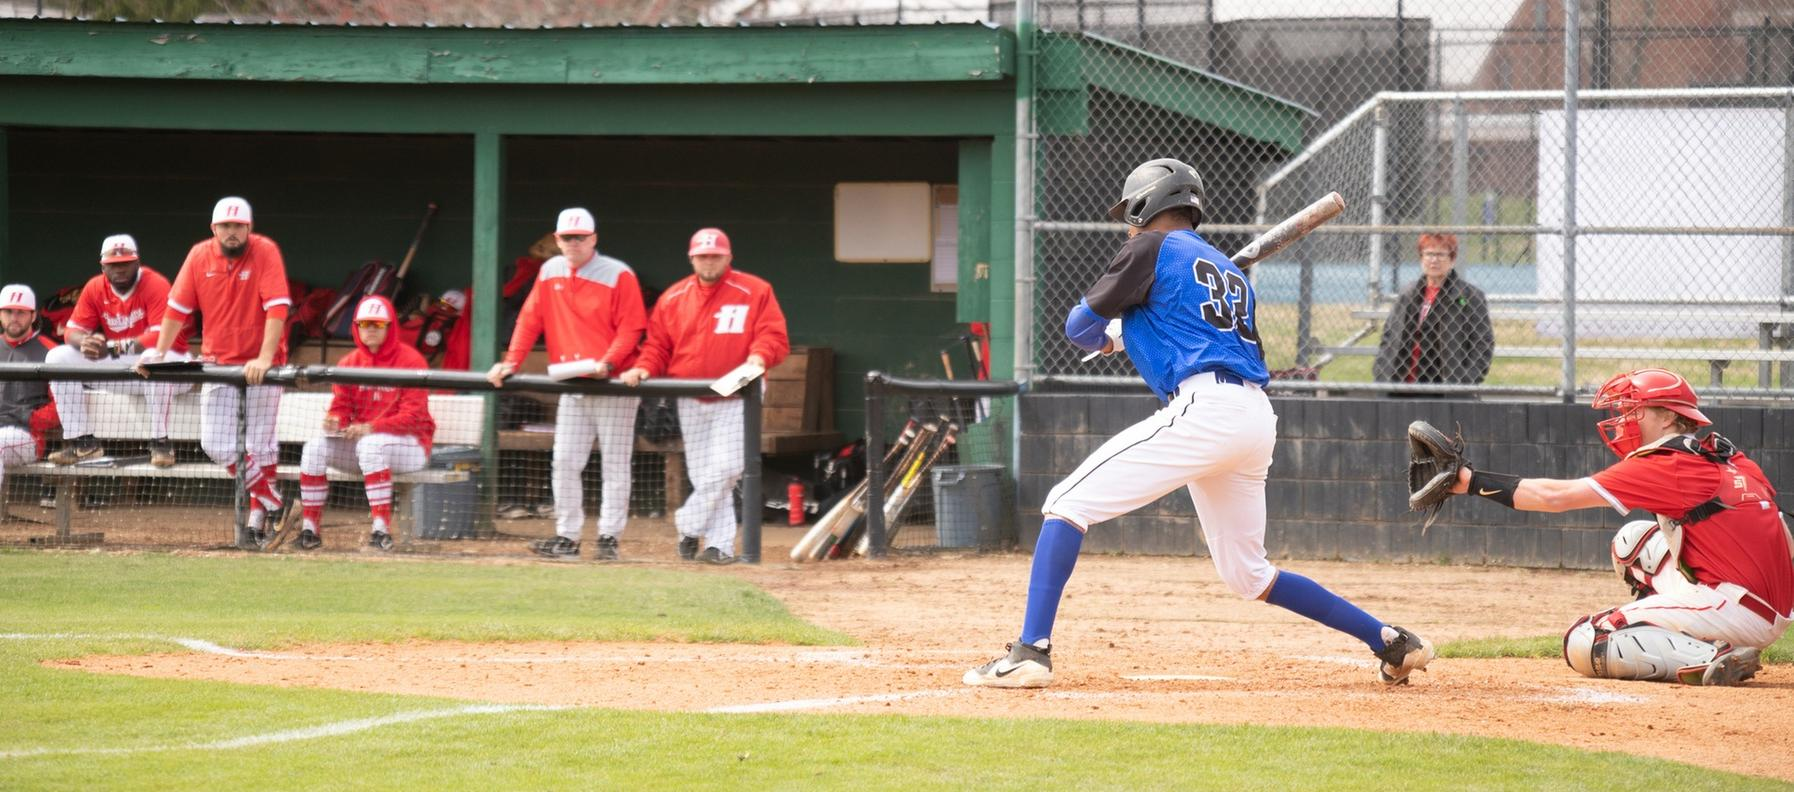 Late-Inning Rally Lifts Nationally-Ranked Hawks over Tornados